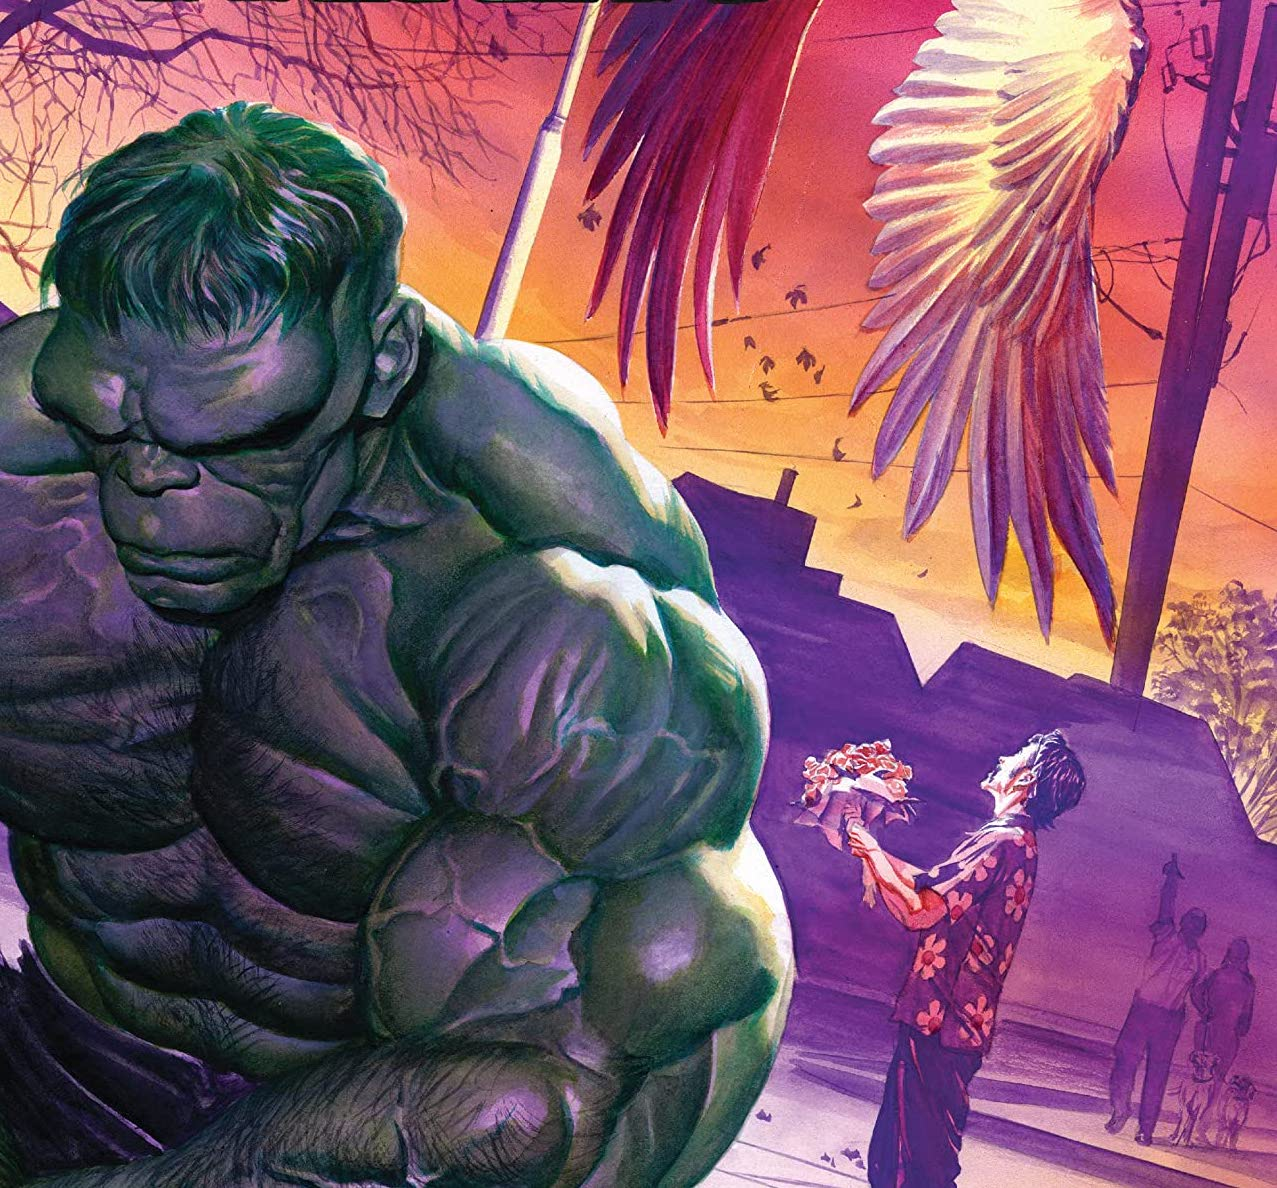 'Immortal Hulk' #48 is the calm before the horrific storm